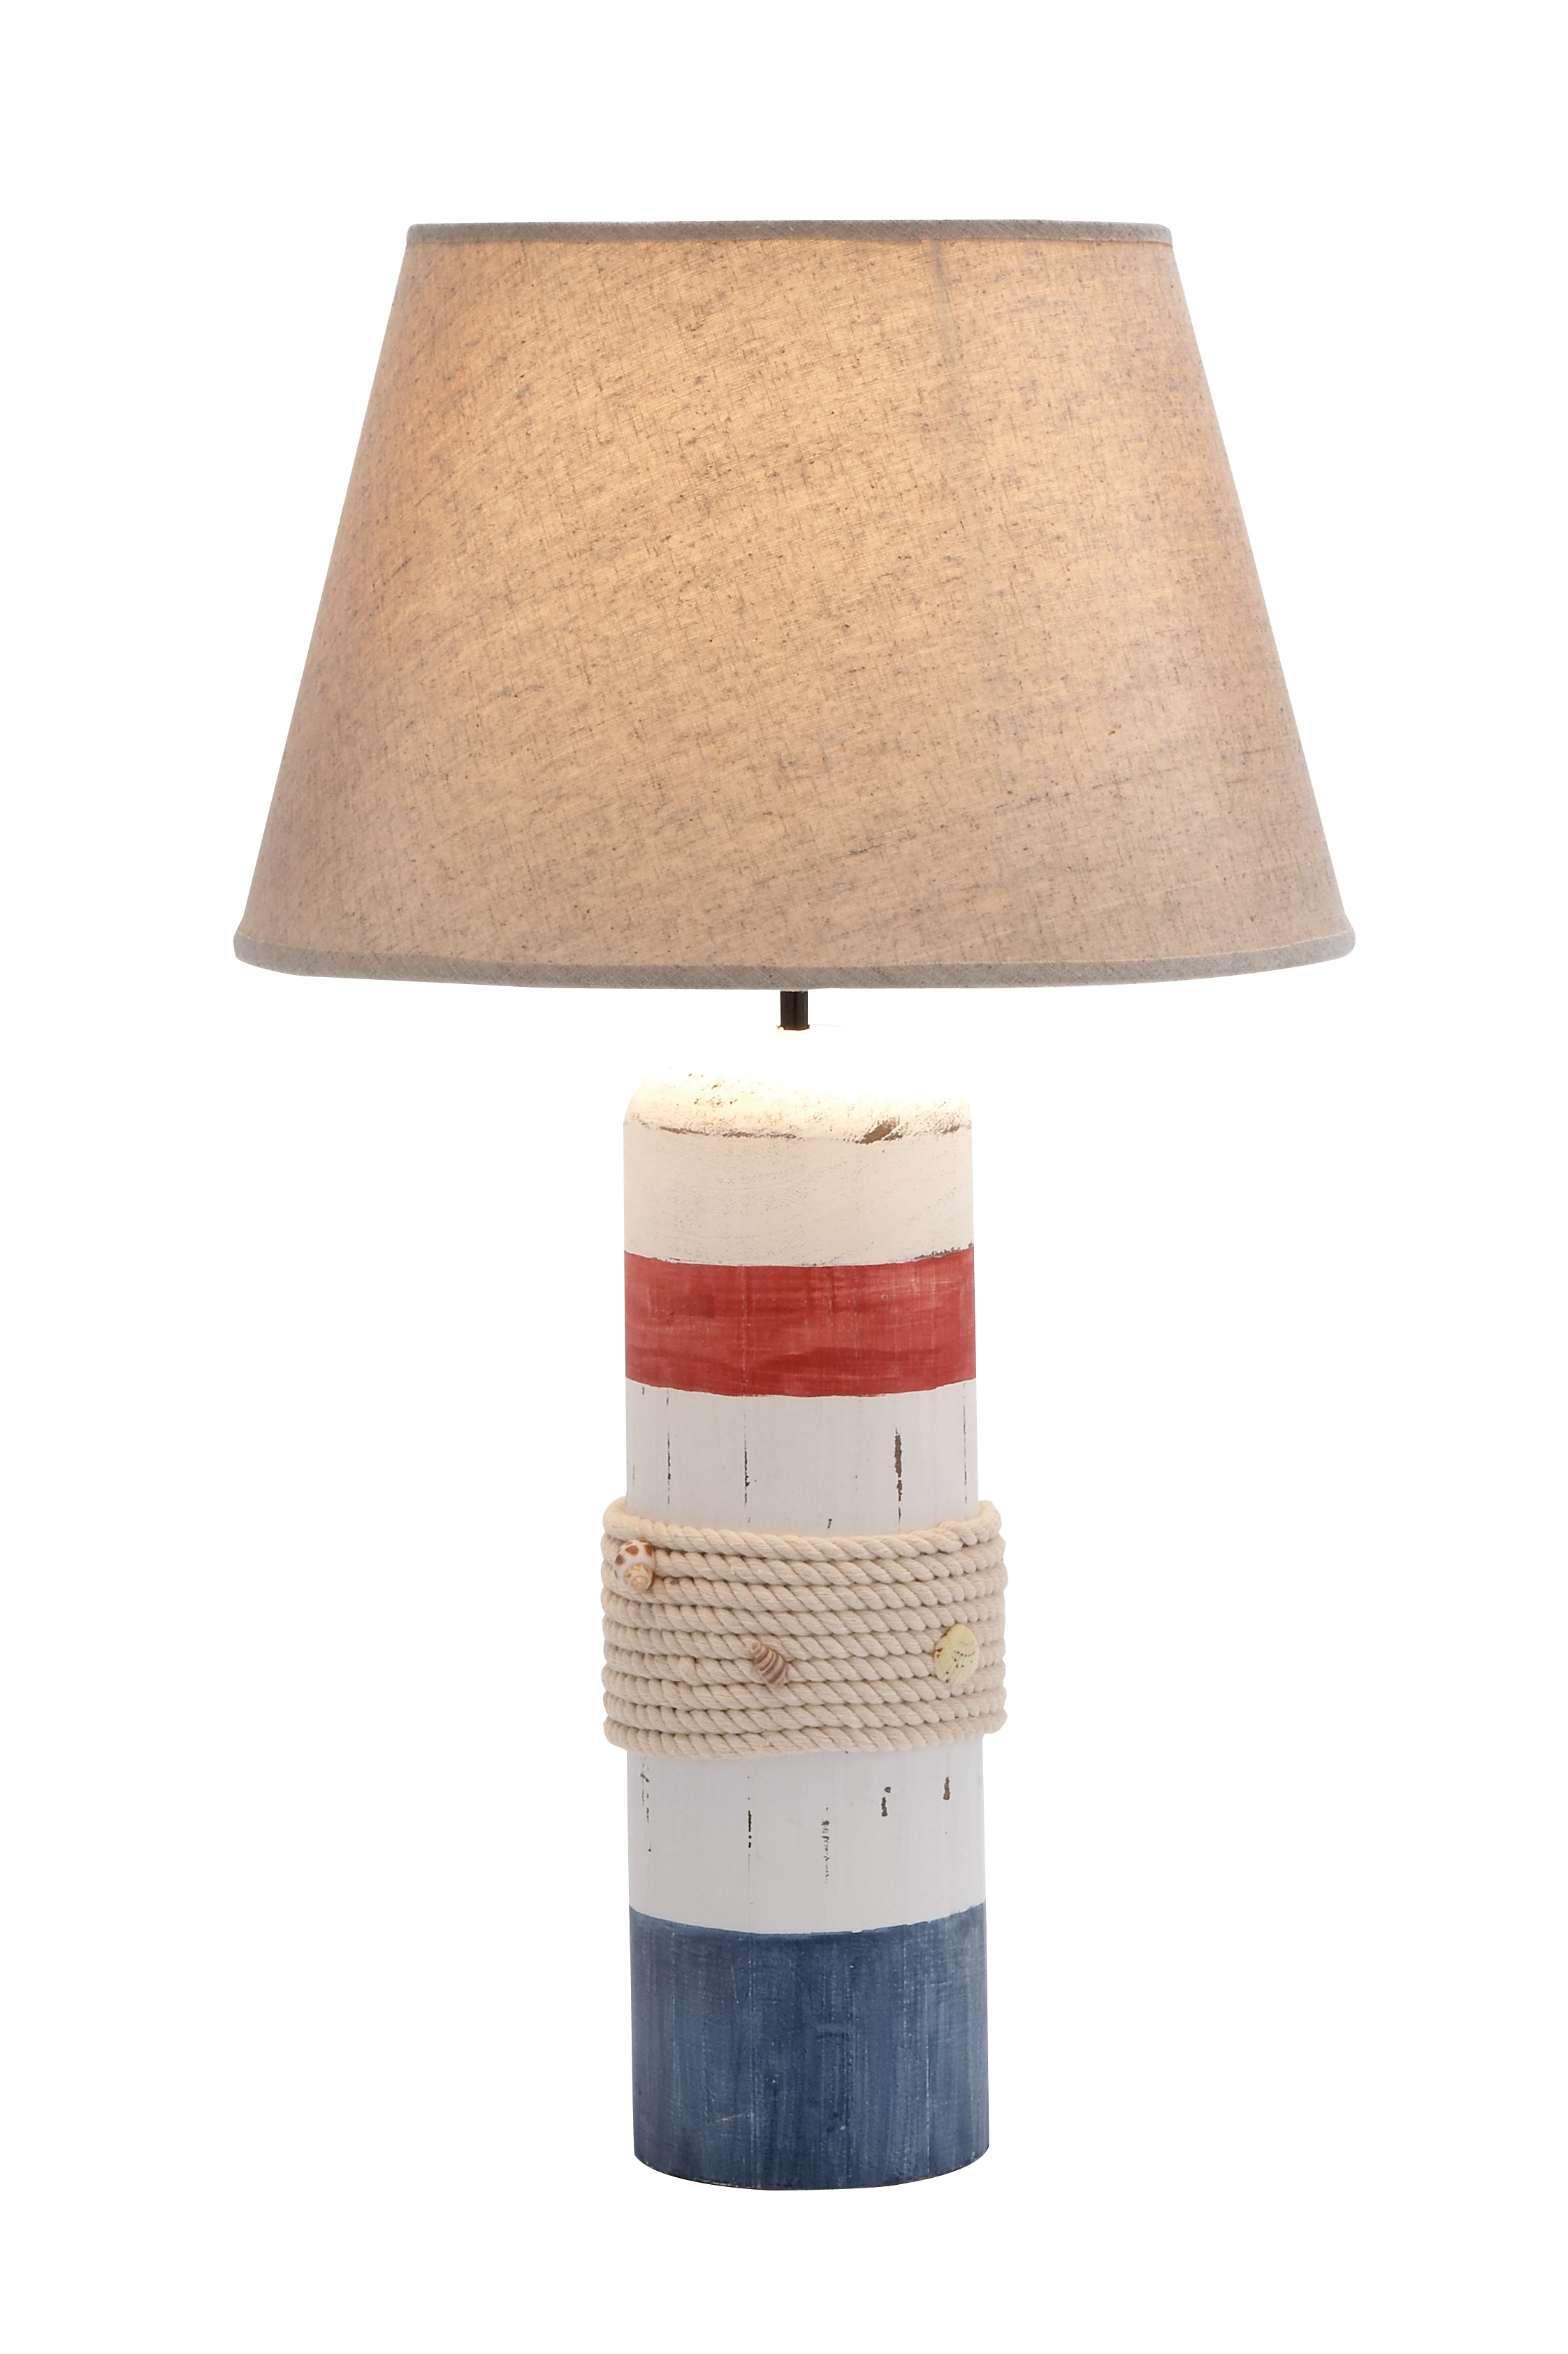 Benzara Stylish Wooden White Buoy Table Lamp with Red and Blue Band 58995344c98fc41ef333cd41